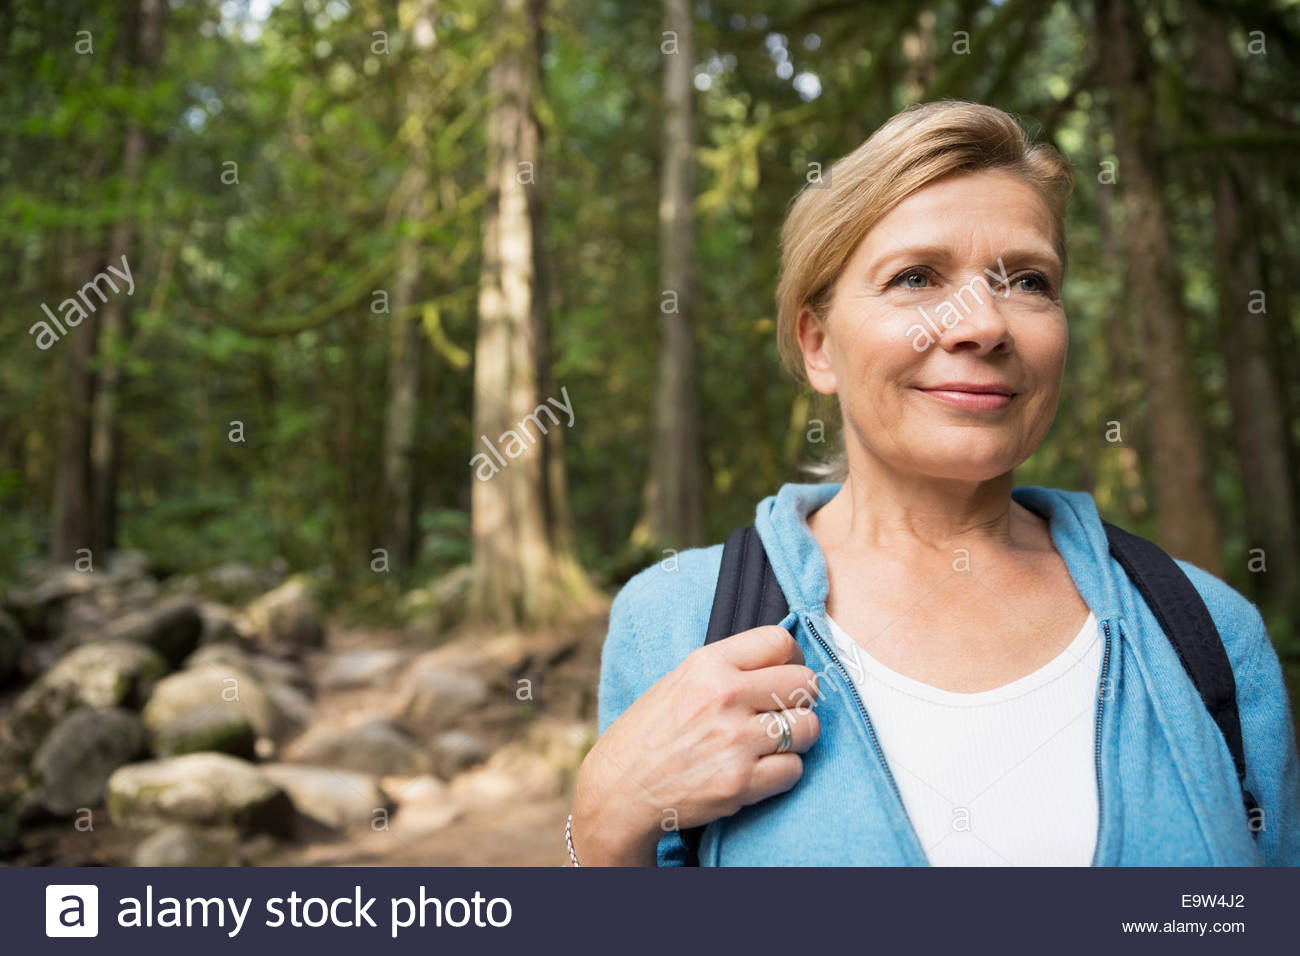 Smiling woman hiking in woods - Stock Image